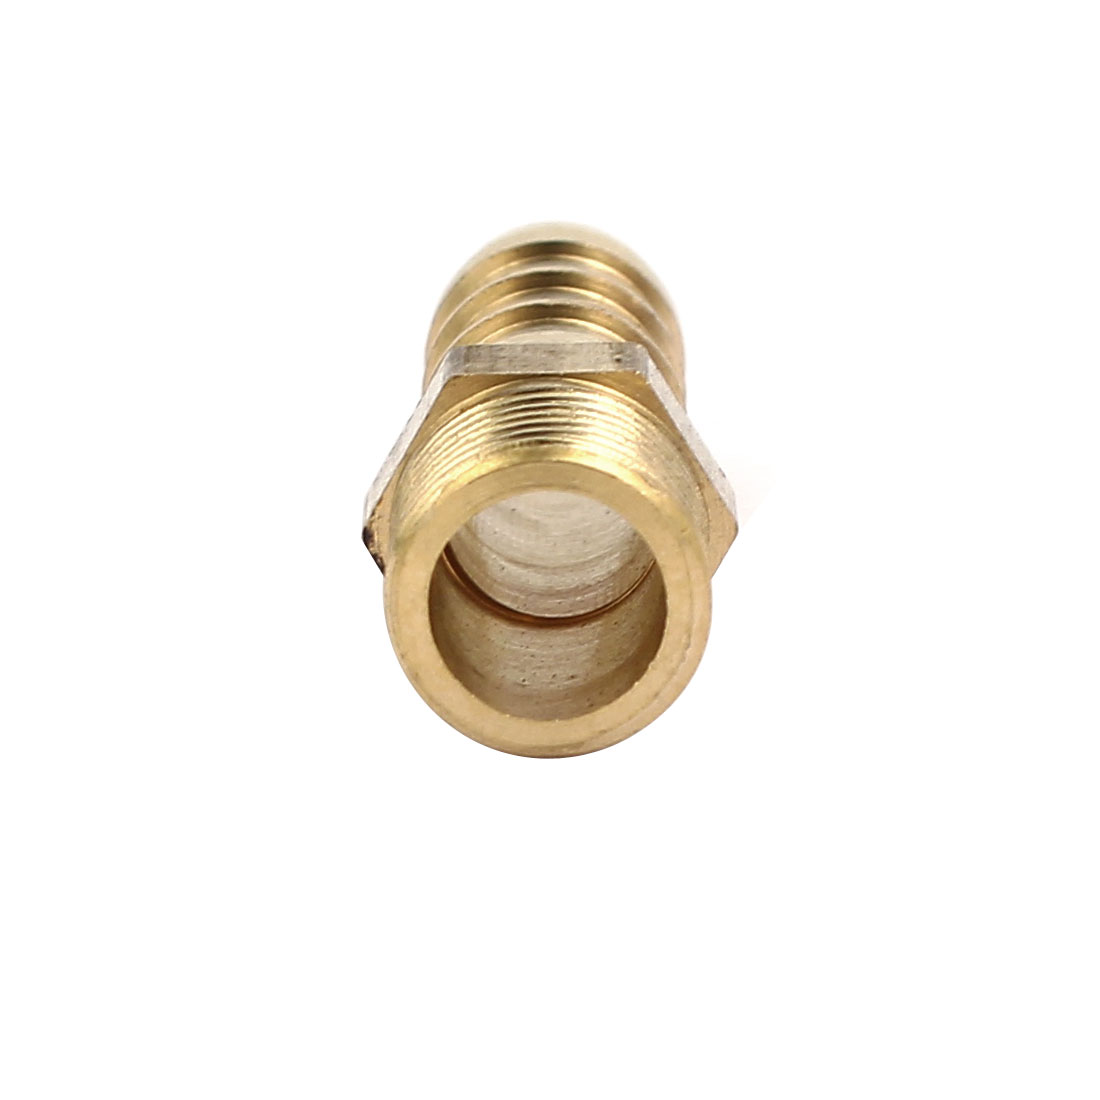 1/8BSP Male Thread 8mm Hose Barb Tube Fitting Coupler Connector Adapter 6pcs - image 1 of 4